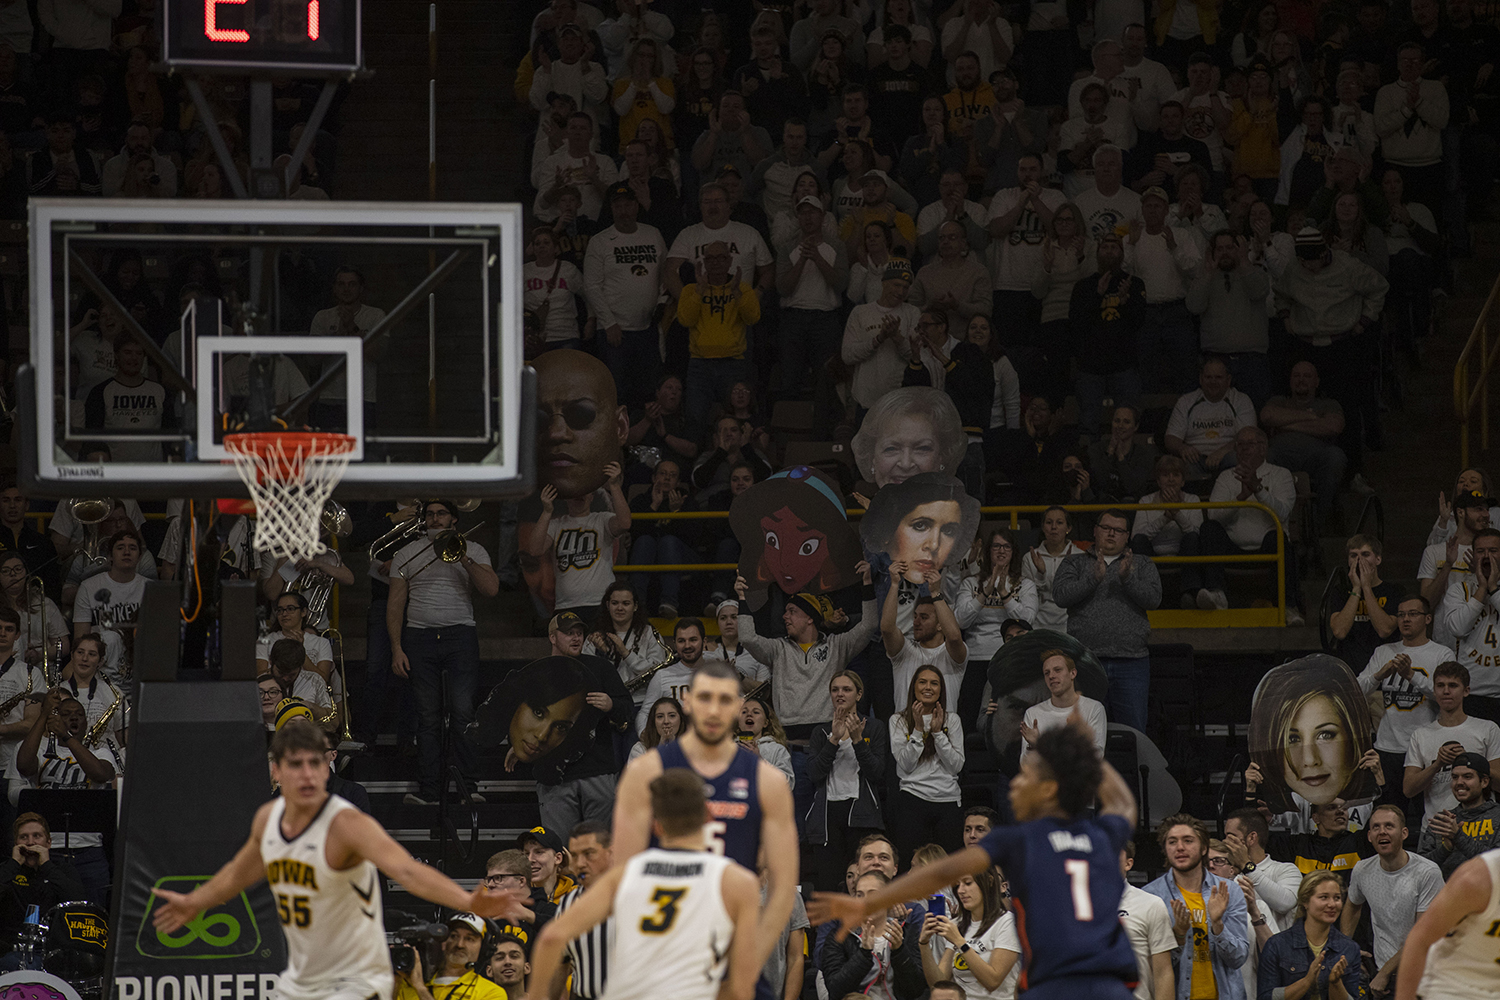 The+Iowa+student+section+holds+up+signs+during+the+Iowa%2FIllinois+men%27s+basketball+game+at+Carver-Hawkeye+Arena+on+Sunday%2C+January+20%2C+2019.+The+Hawkeyes+defeated+the+Fighting+Illini%2C+95-71.+